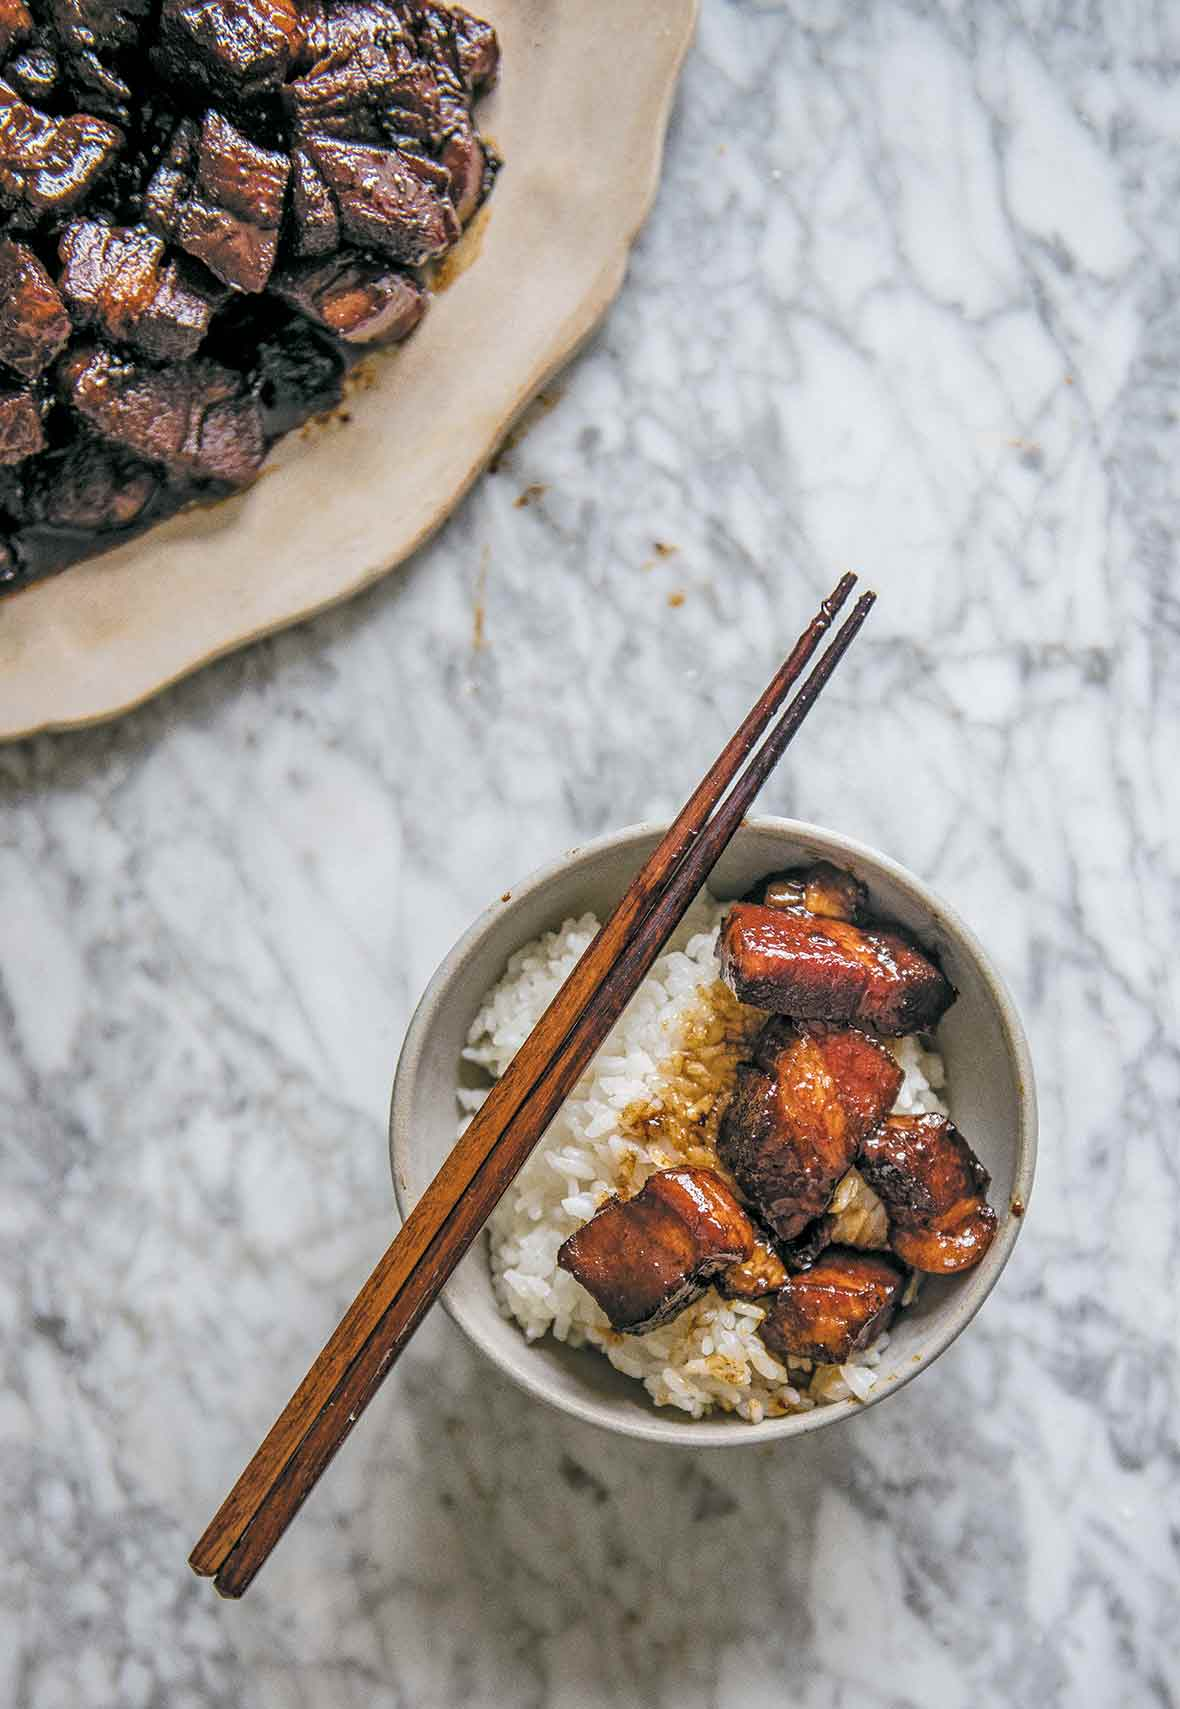 A bowl of rice topped with red cooked pork and a pair of chopsticks resting on the bowl. A plate of red cooked pork on the side